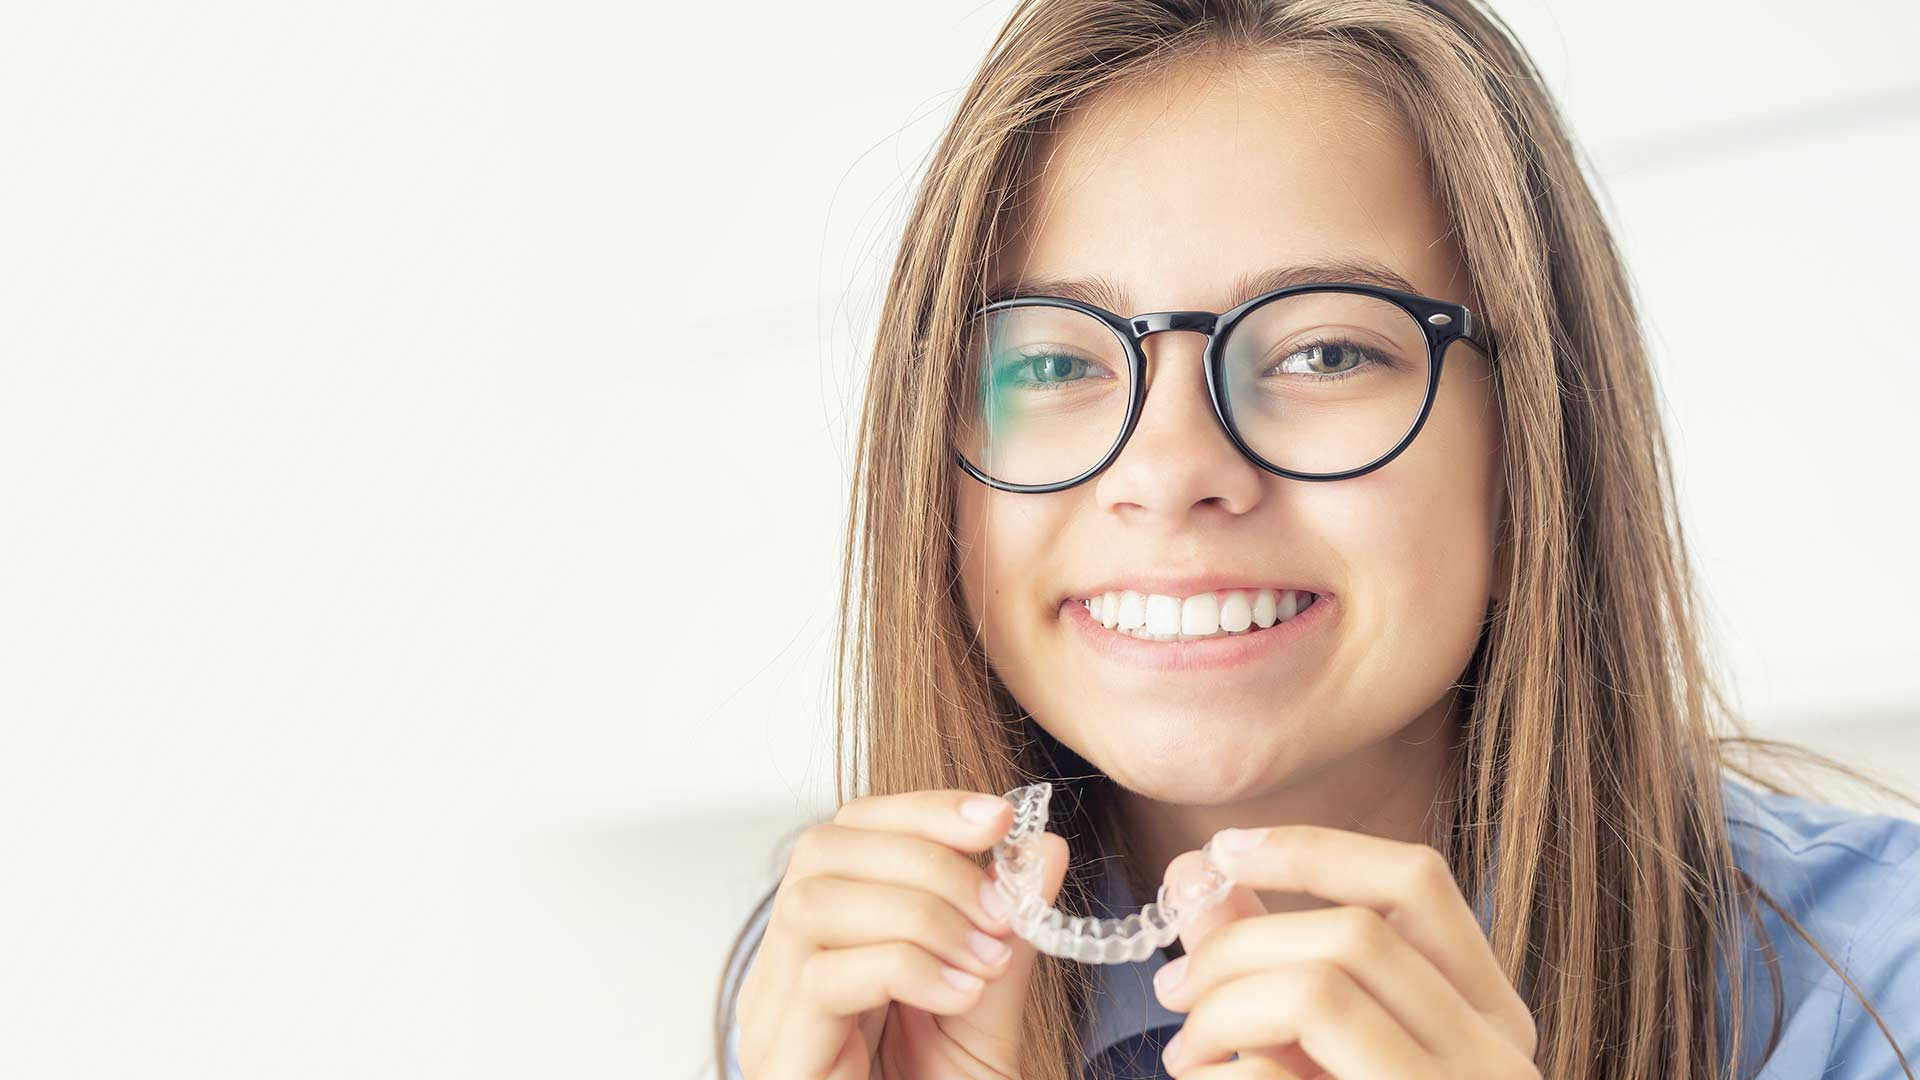 A teenage girl wearing glasses smiles to show her new straighter teeth while holding a clear aligner